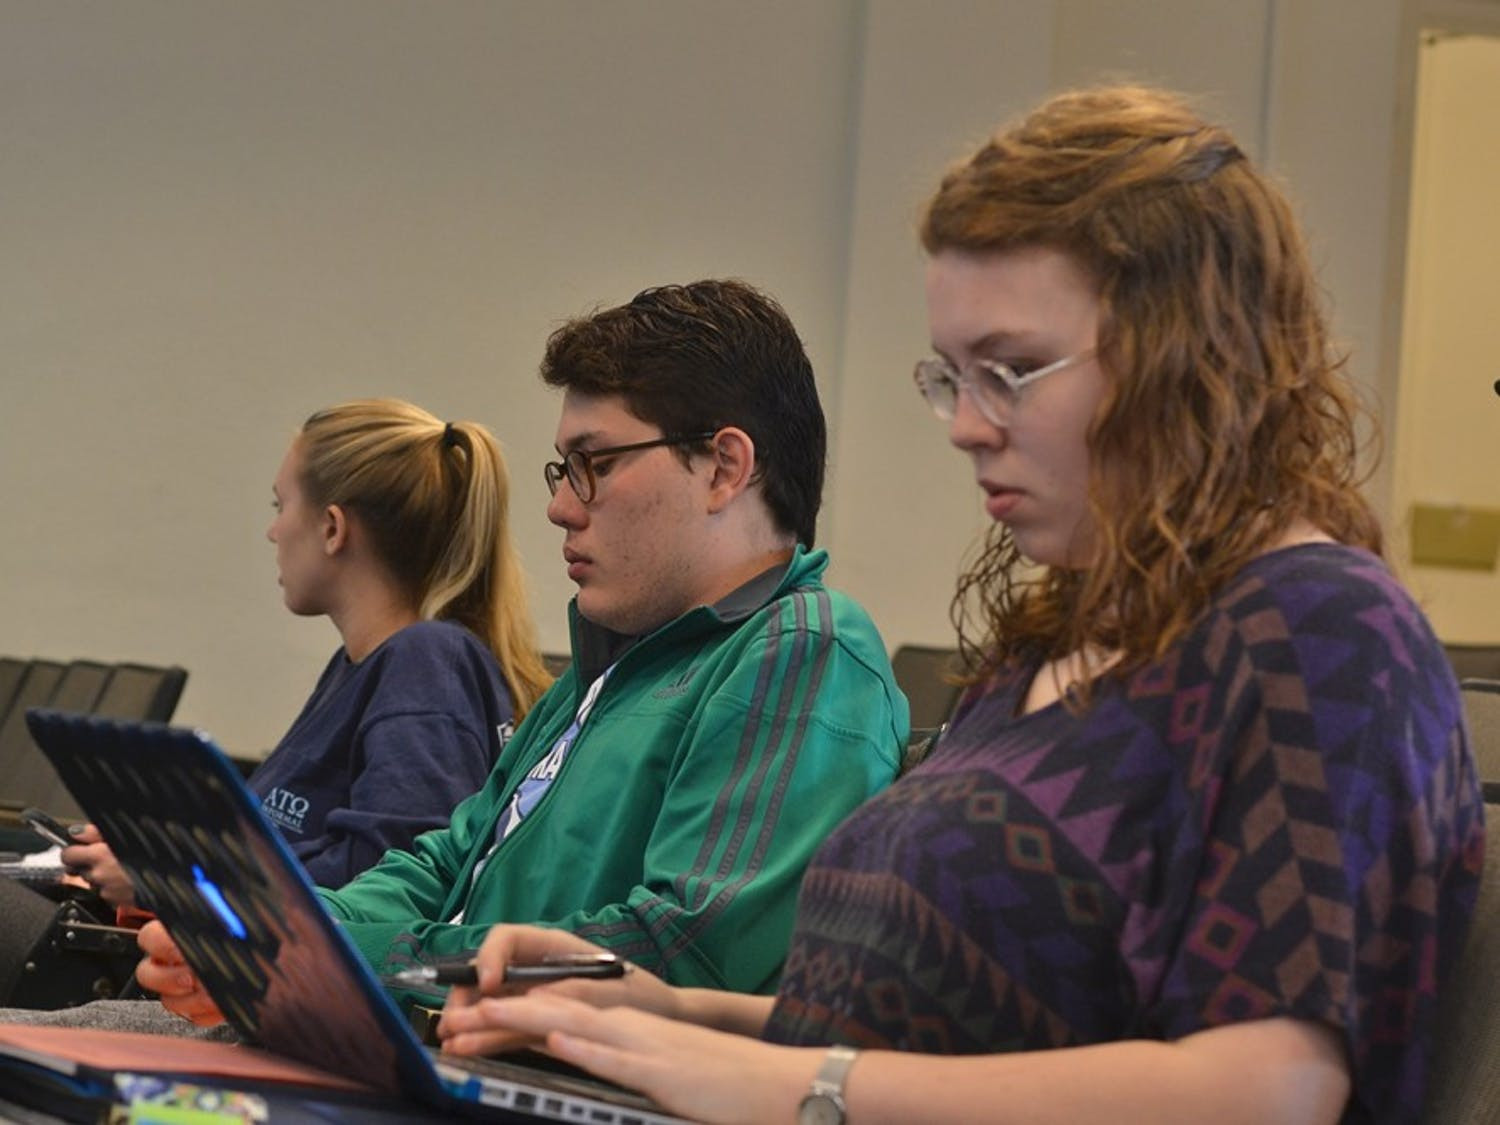 Saturday afternoon, Feb. 20, students gathered in Bingham for election protection training and to learn about primary polls. First-year Rebecca Price, sophomore Sebastian Hibbard, and junior Amanda Nunn sit among the other voters.